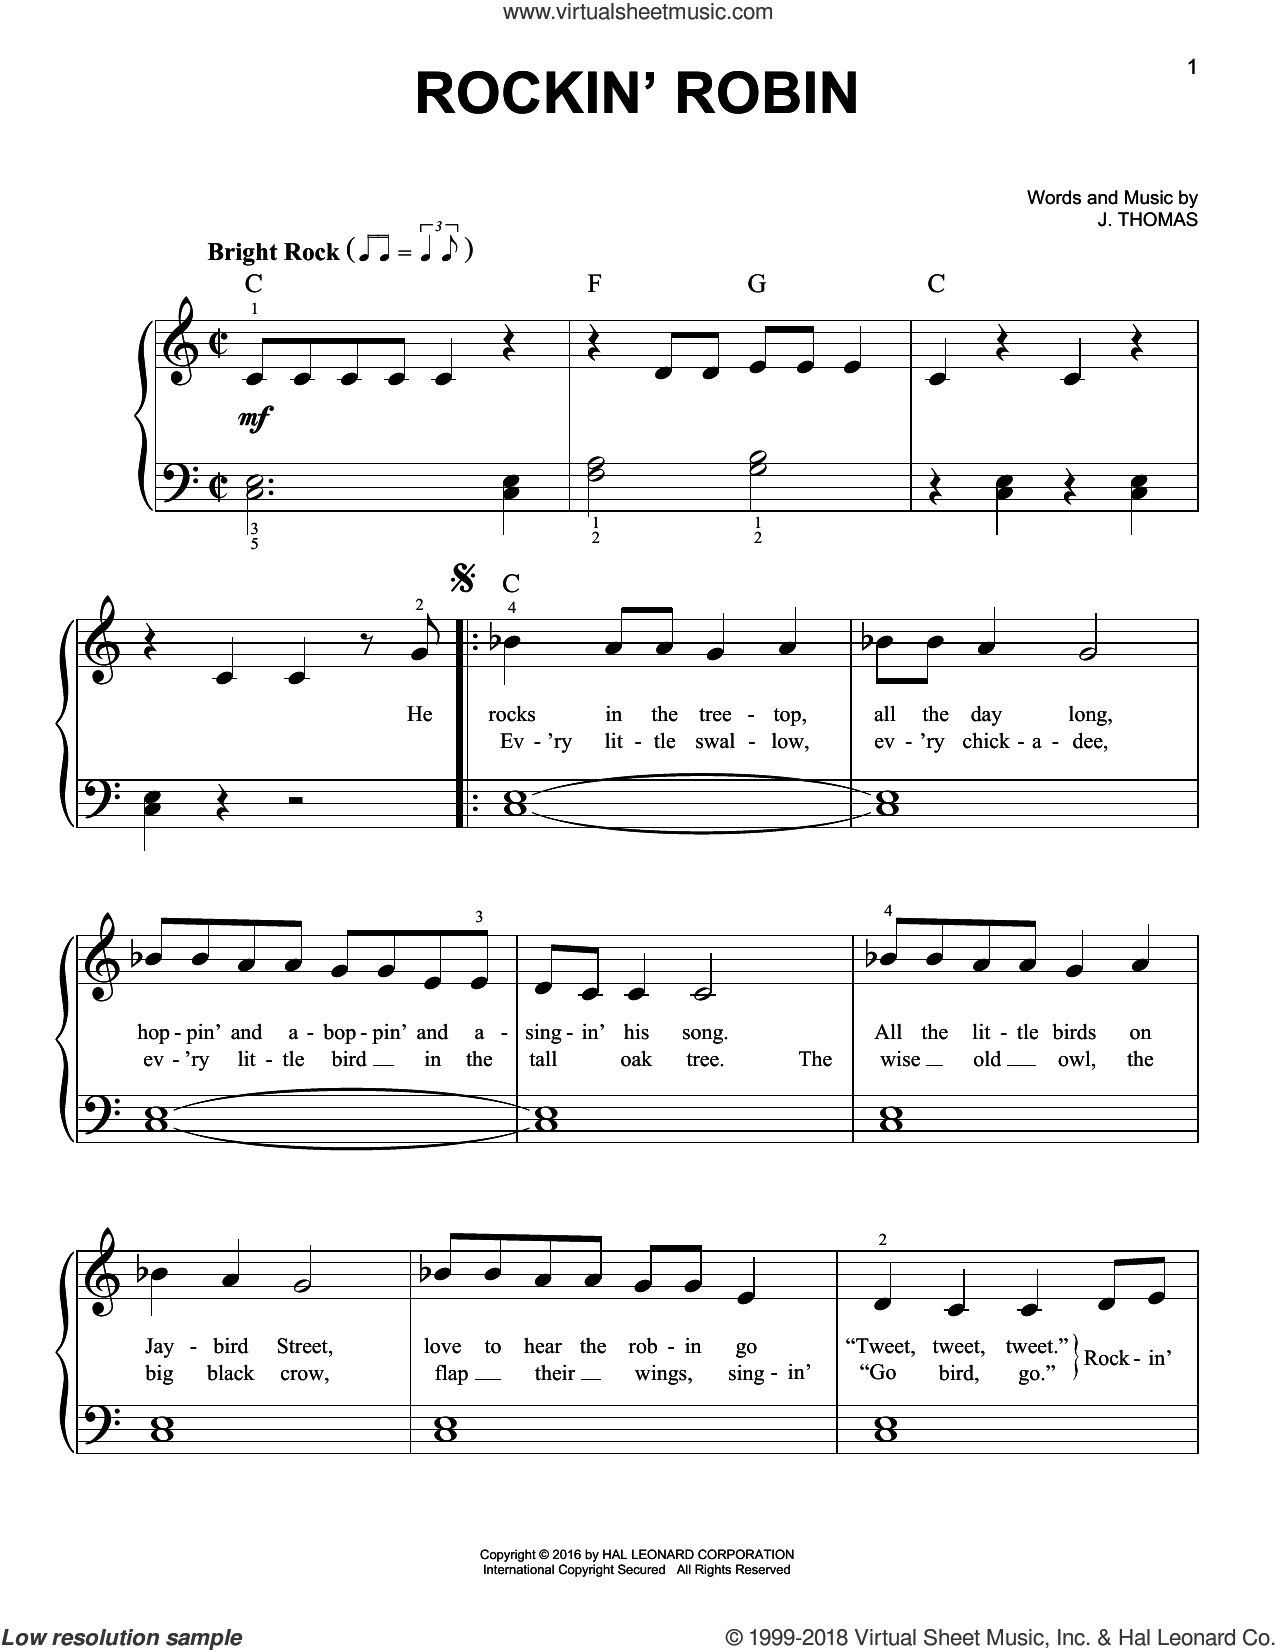 Rockin' Robin sheet music for piano solo by Thomas Jimmie